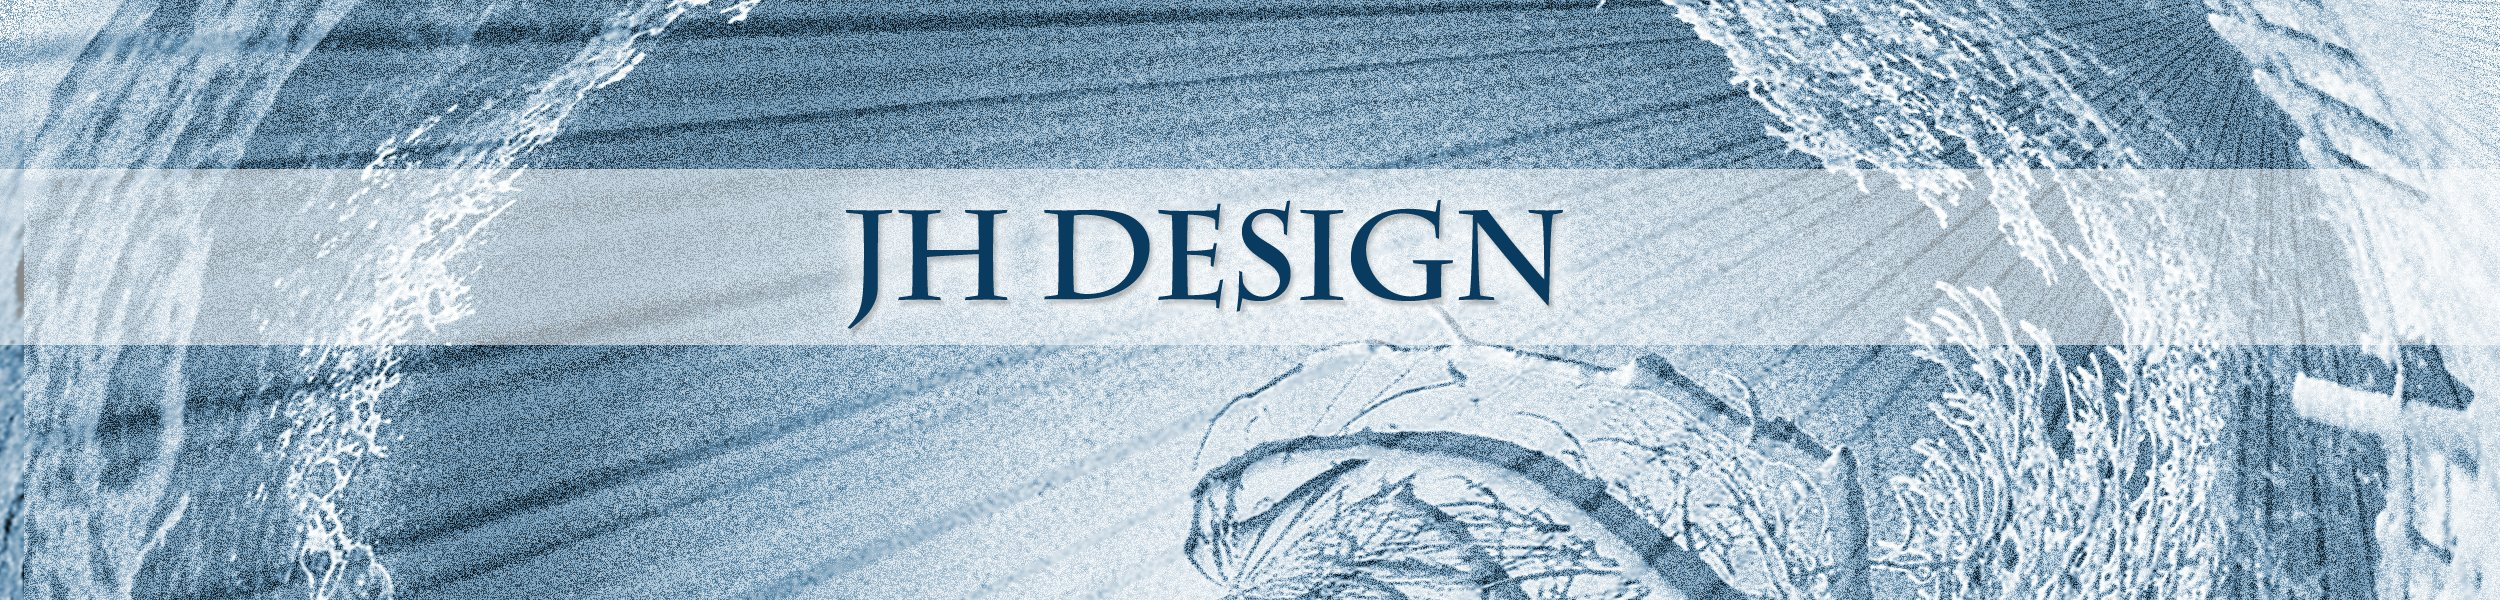 JH Design - Image Editing and Graphic Design